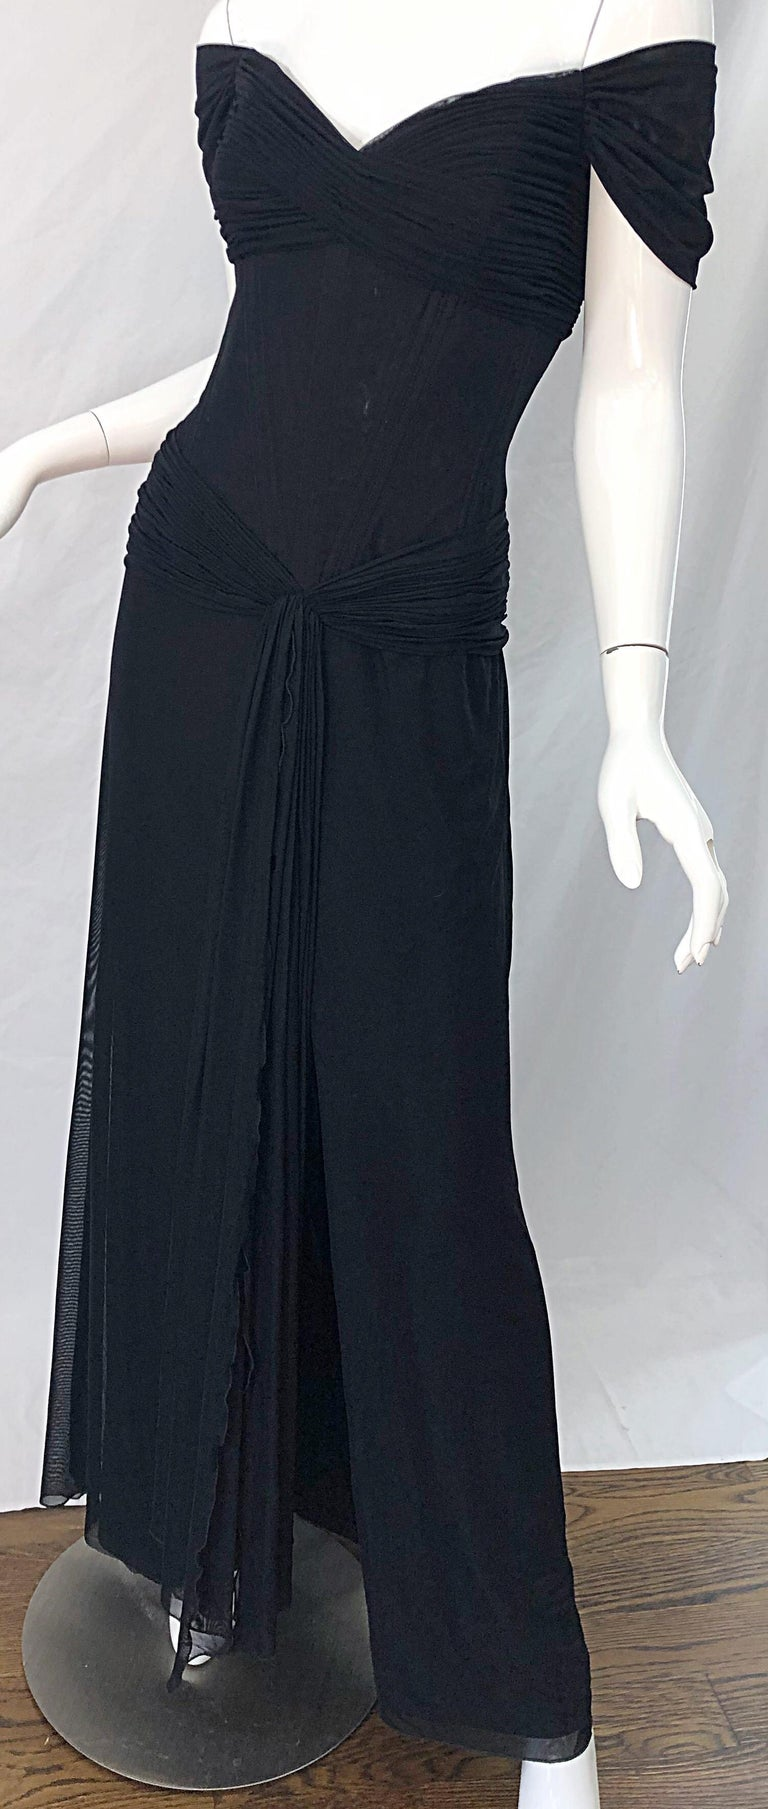 Julia Roberts Pretty Woman Vintage Vicky Tiel Couture Sz 12 Black 1980s Gown For Sale 5